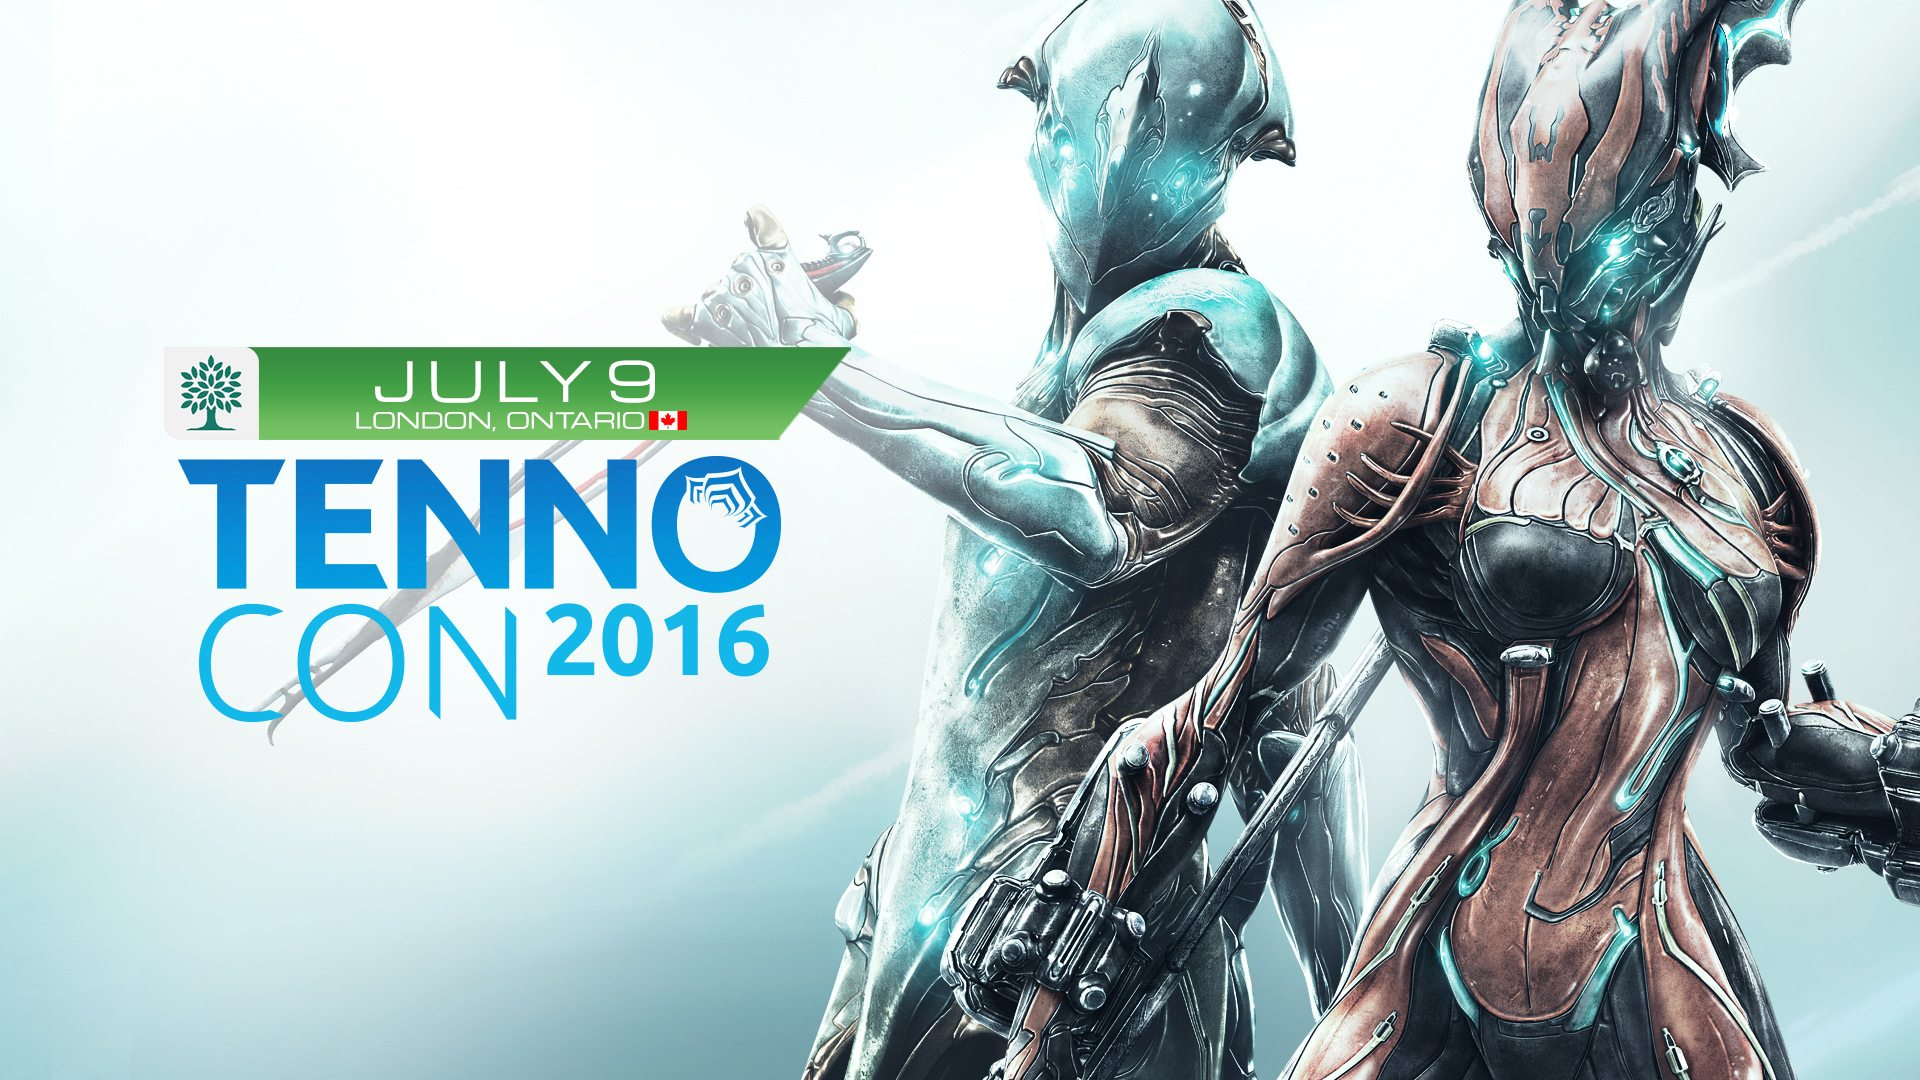 WARFRAME TennoCon 2016 is a Soldout Success